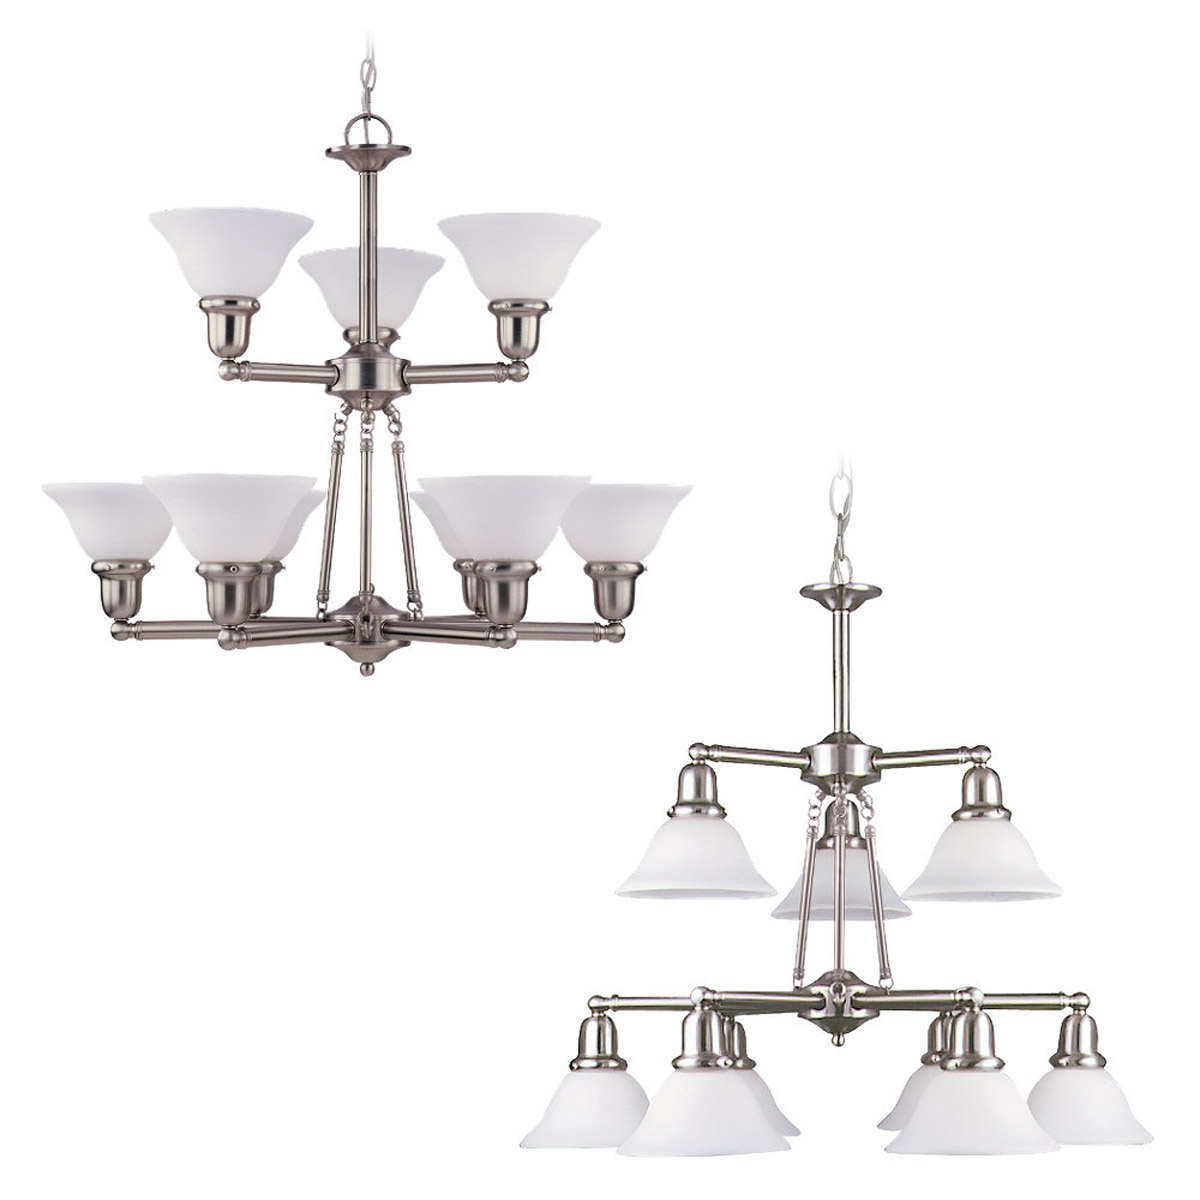 Sea Gull Lighting Sussex 9 Light Chandelier in Brushed Nickel 39063BLE-962 photo